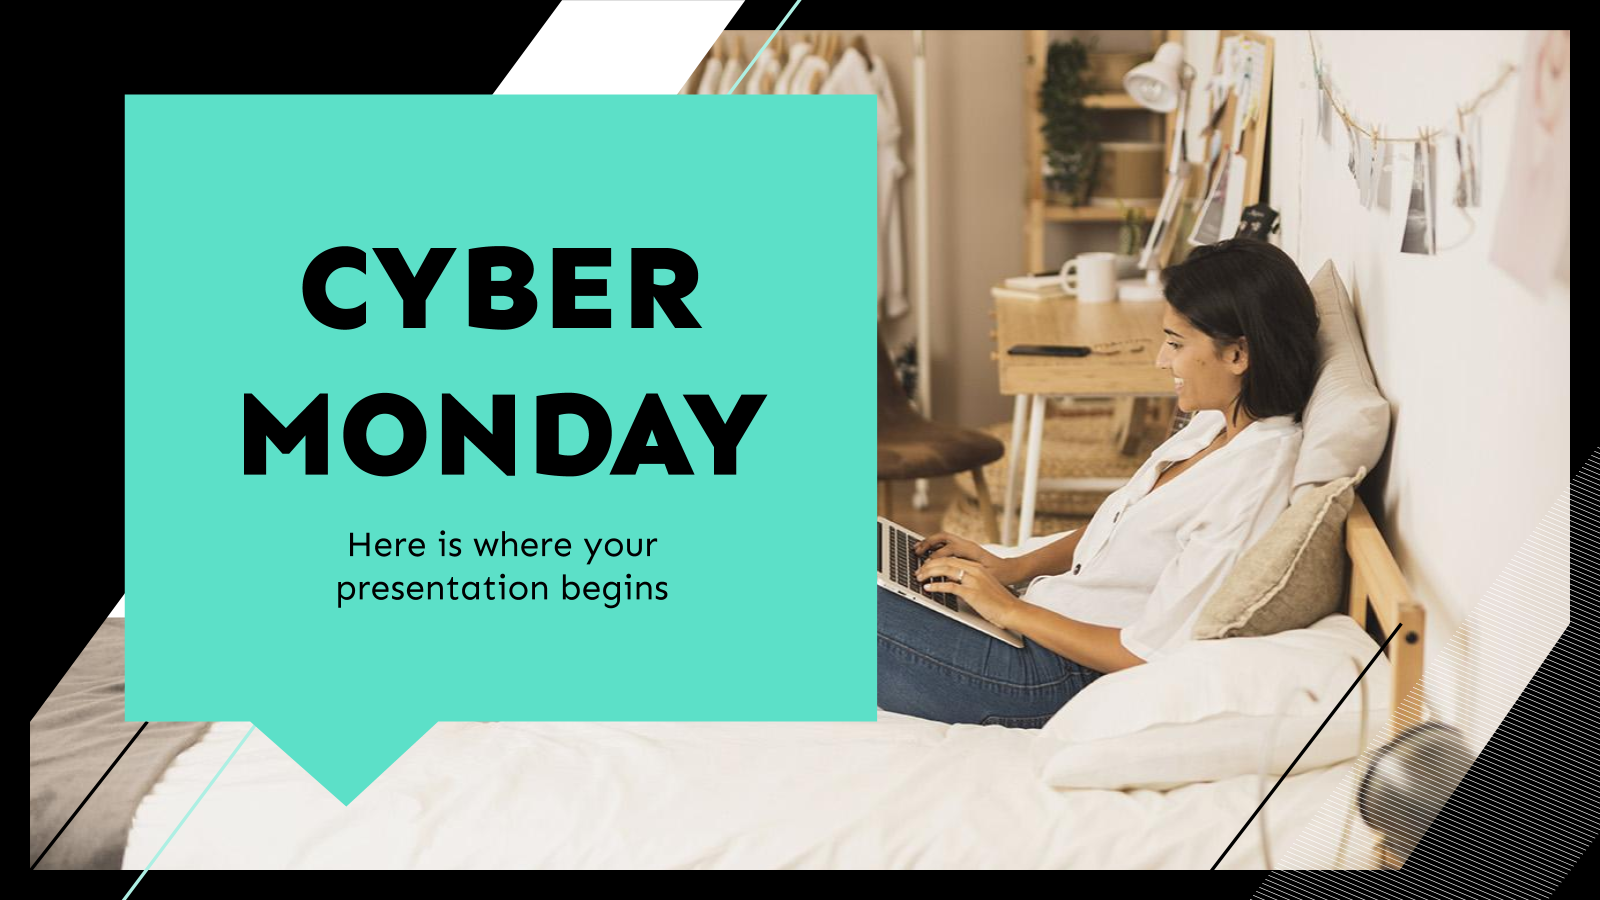 Cyber Monday presentation template